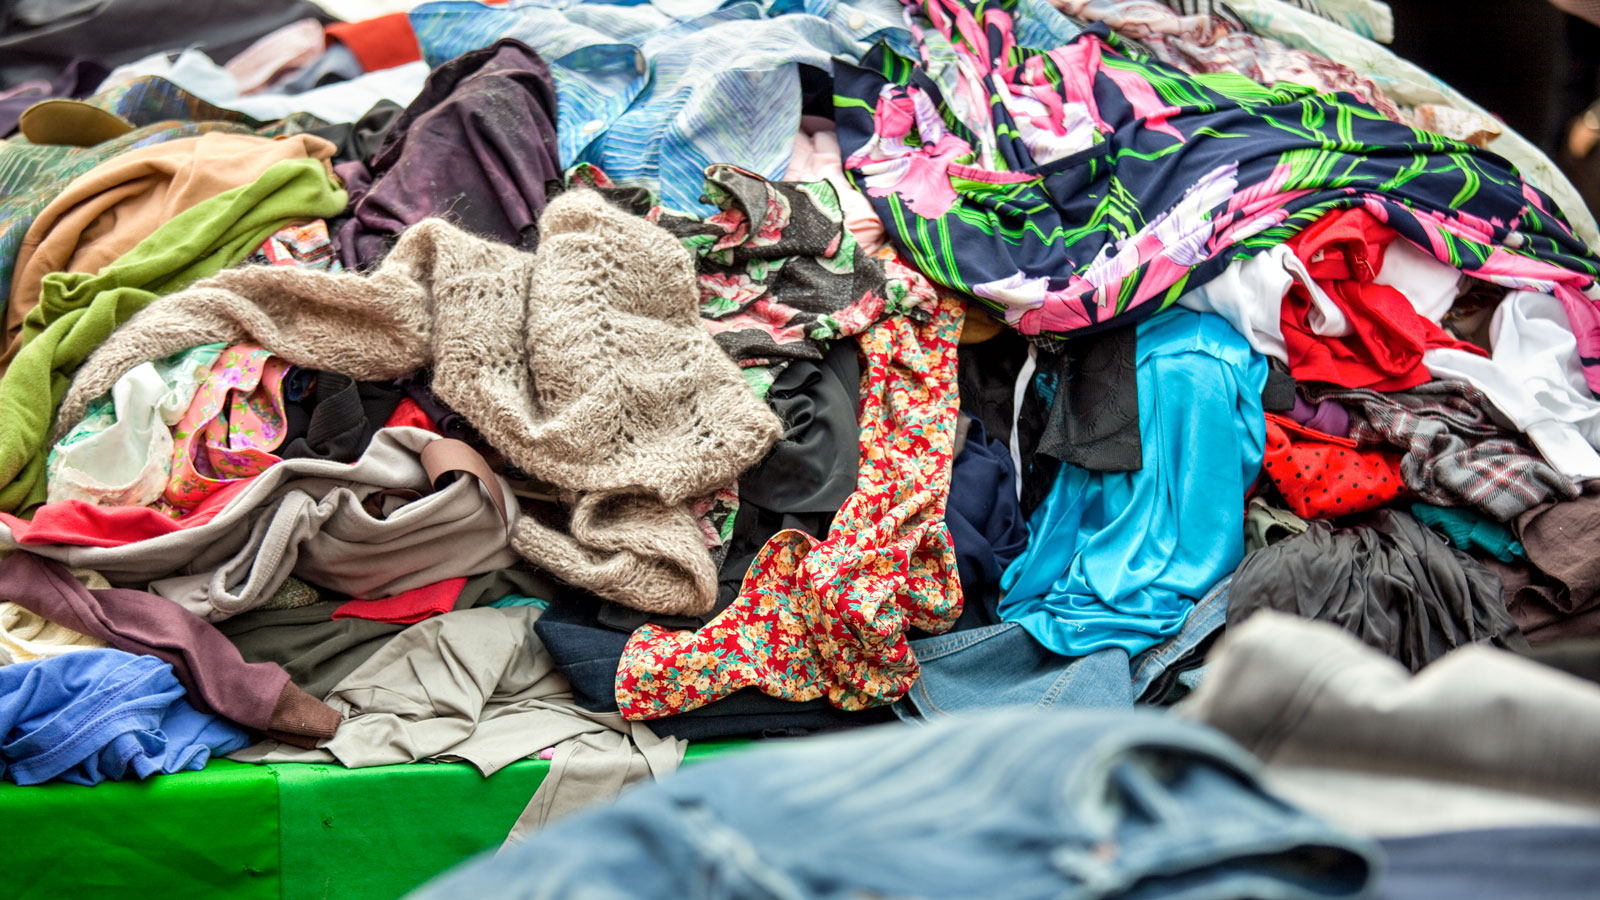 A pile of used clothing at a flea market.